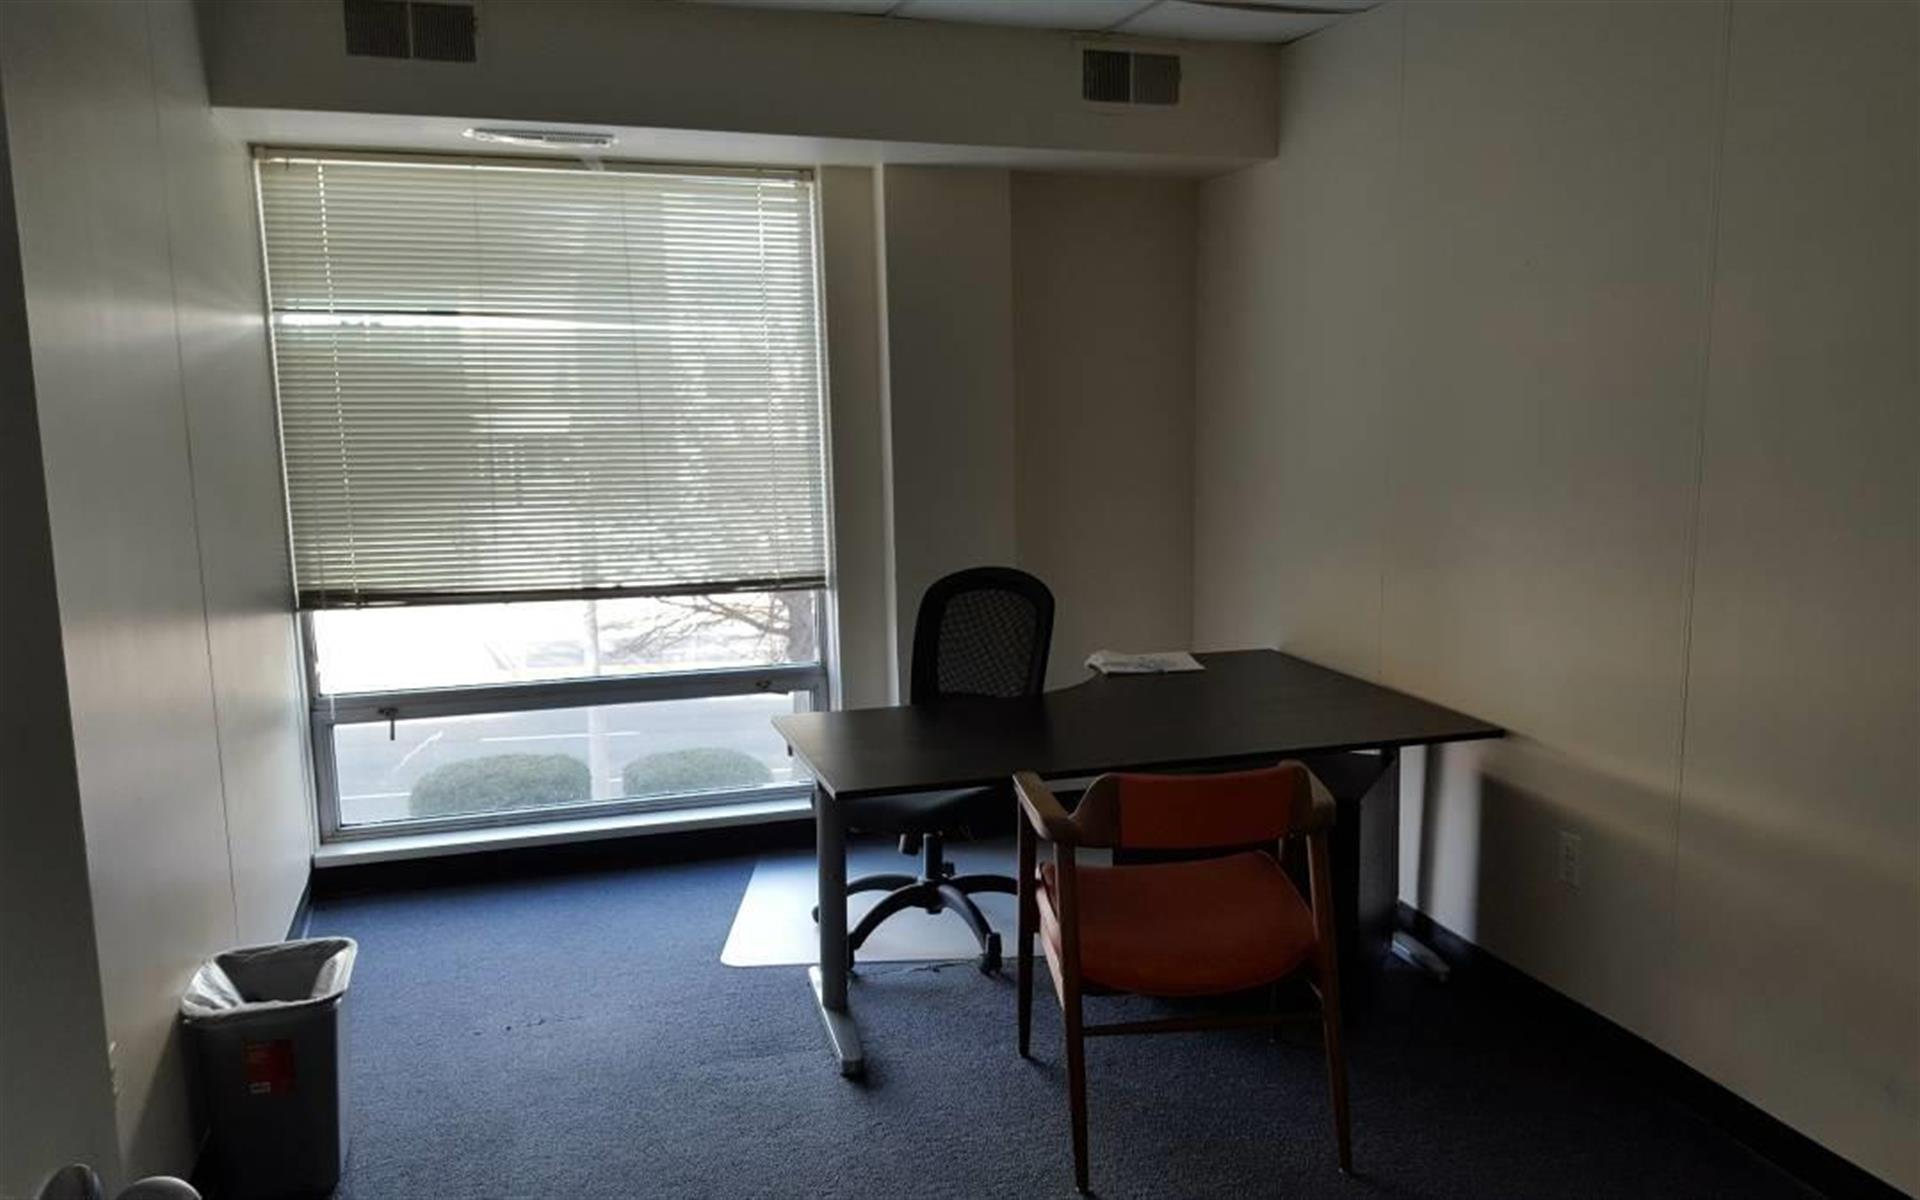 Clear Law Institute - Office Space near Virginia Square